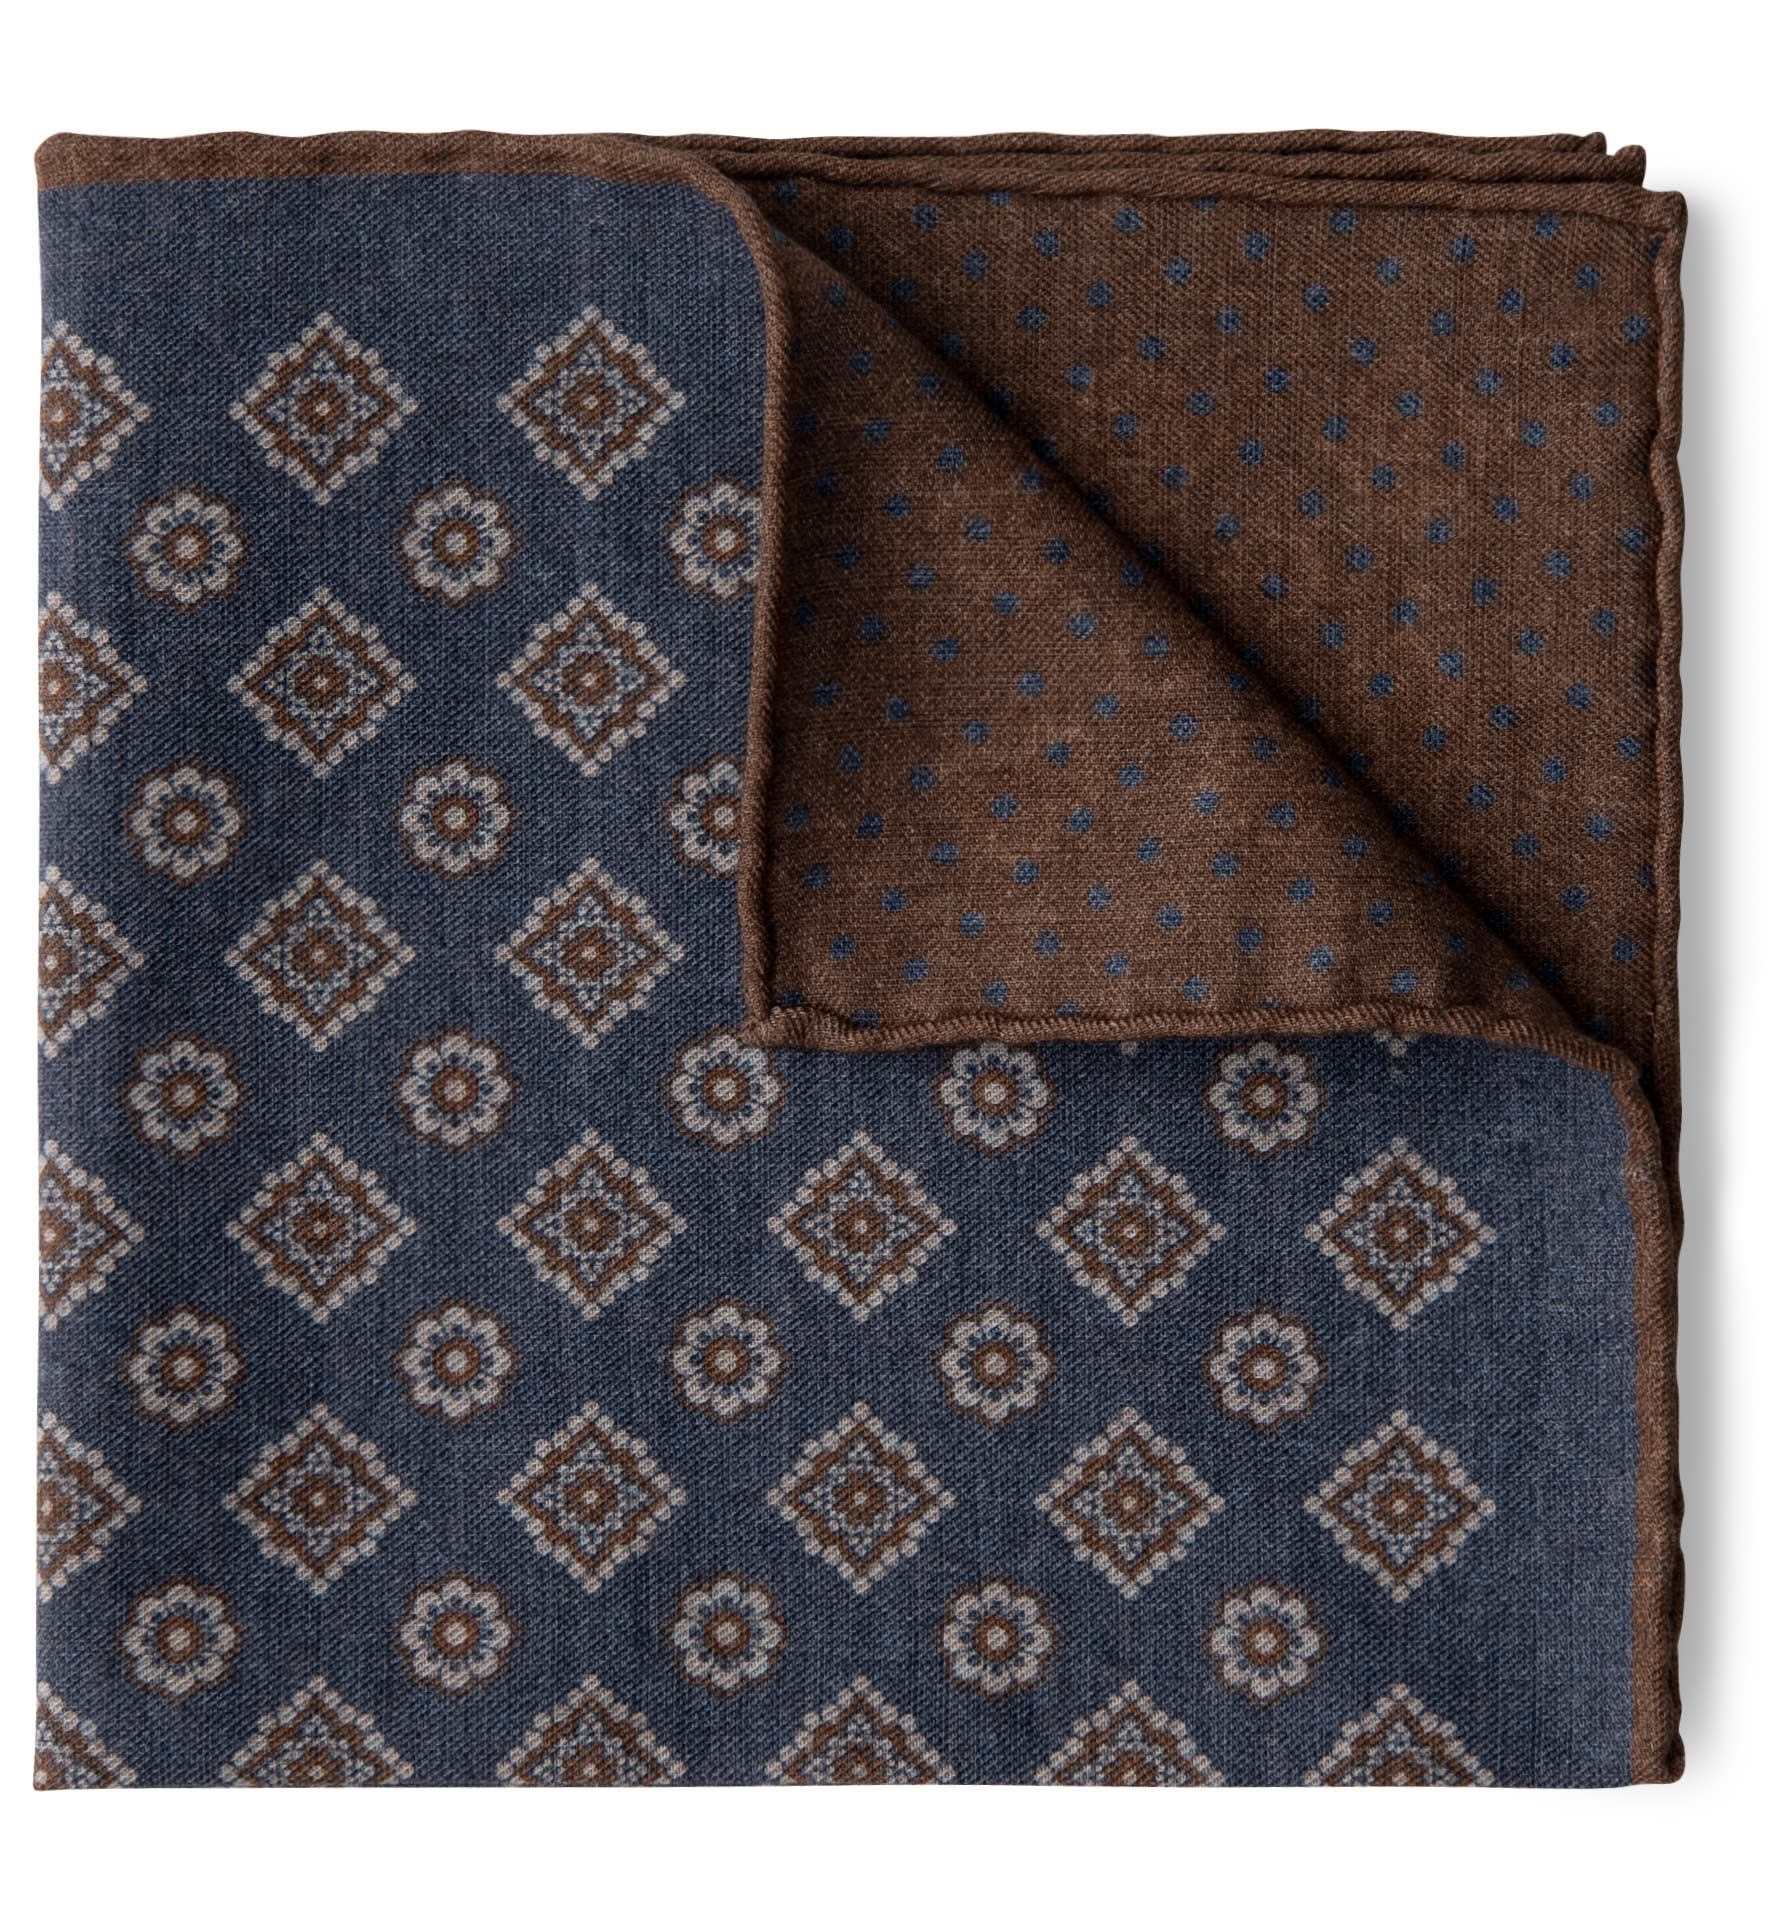 Zoom Image of Faded Navy and Brown Foulard Print Pocket Square